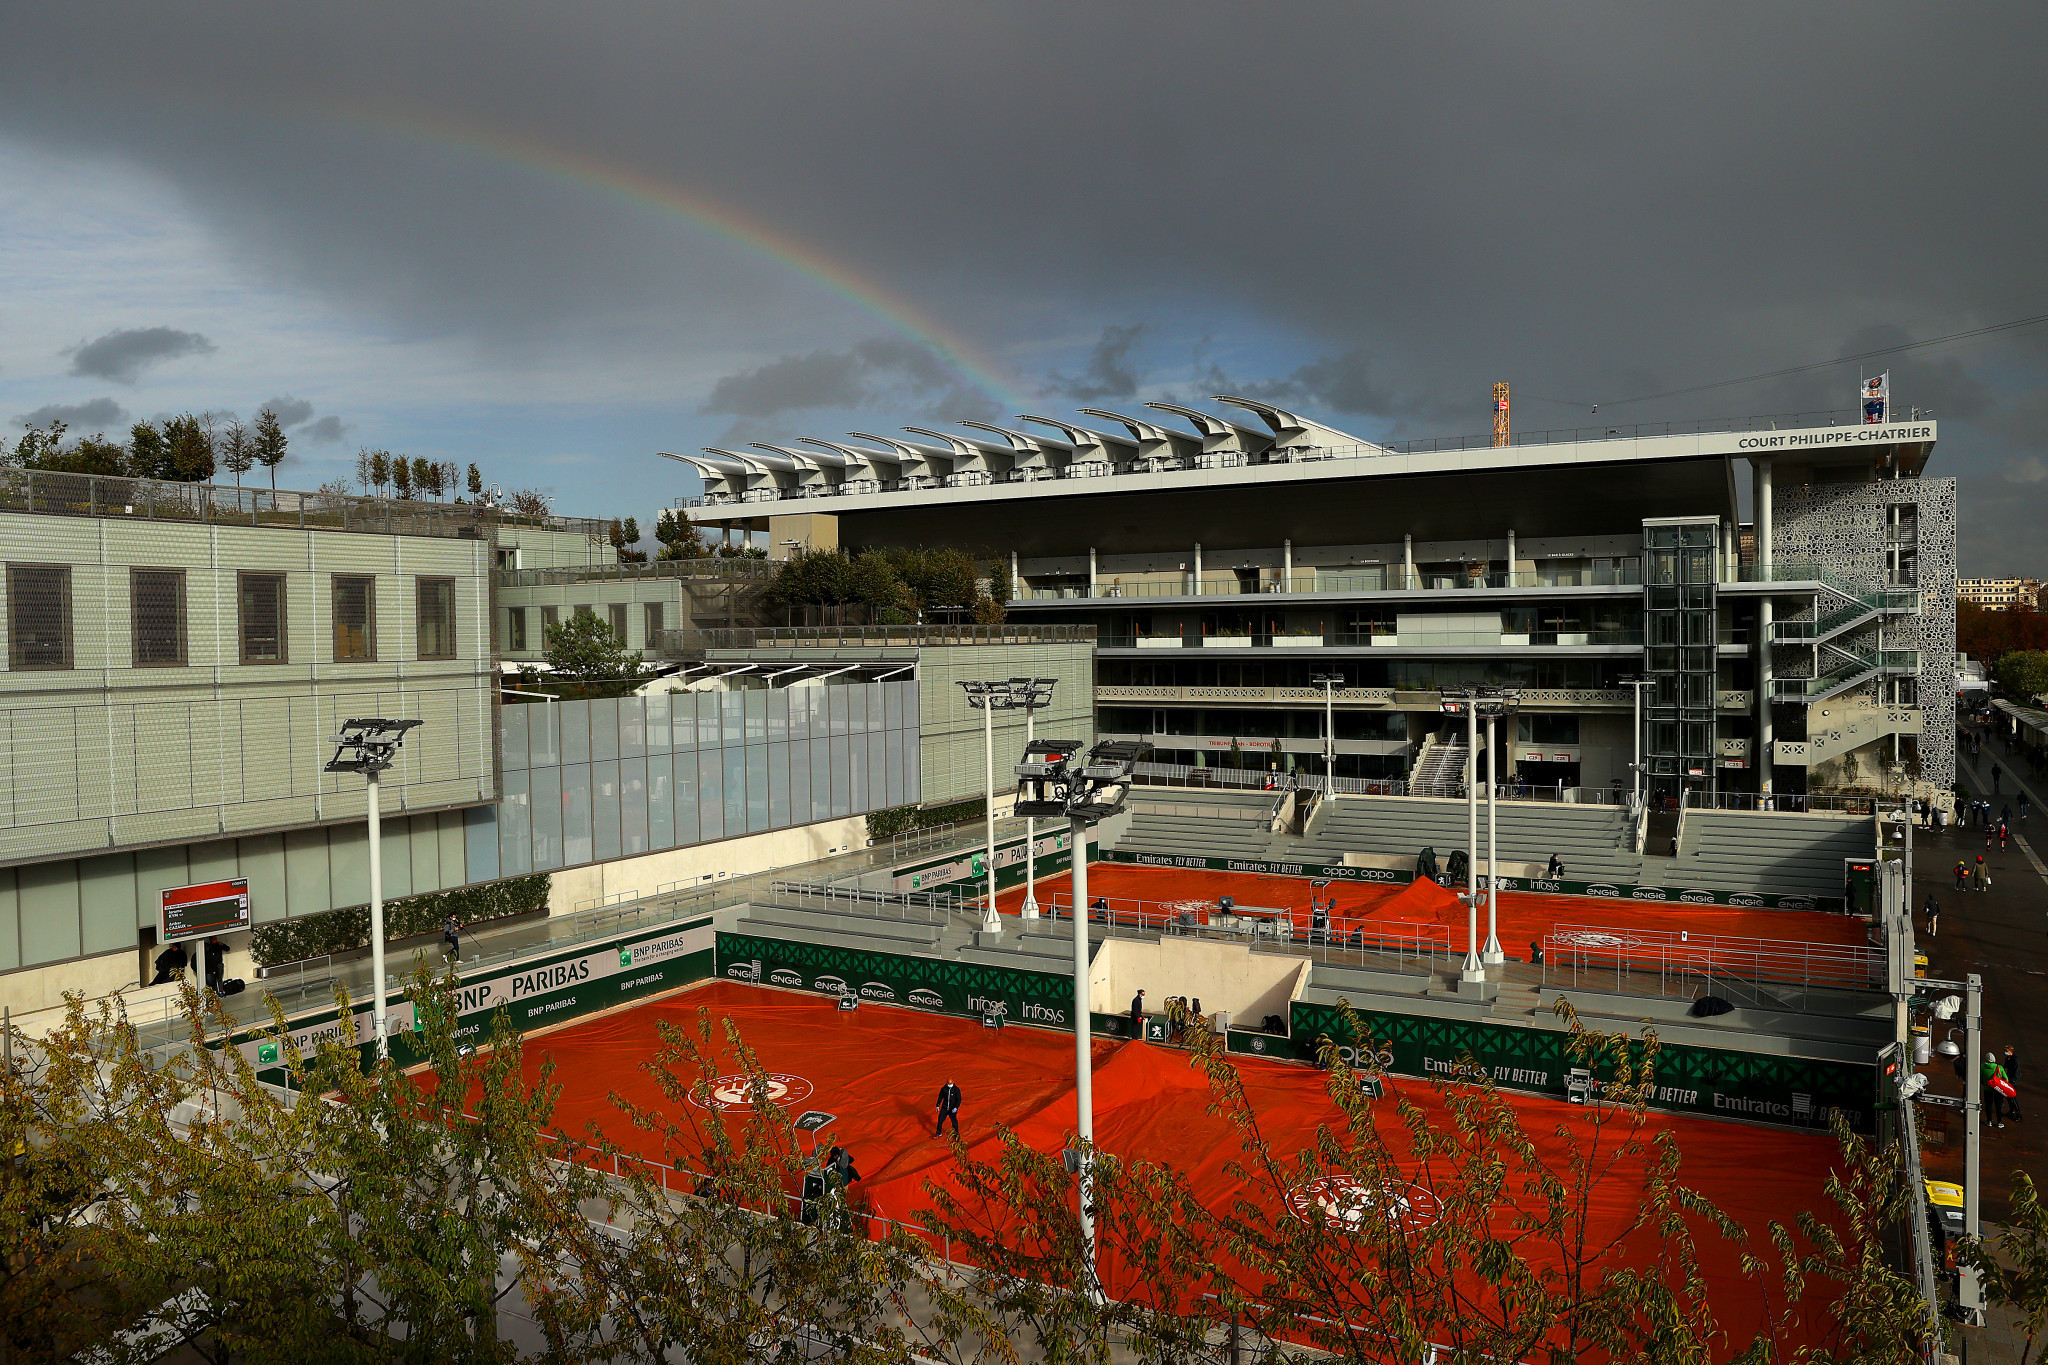 On a variable day of weather, a rainbow could be seen over the Roland Garros complex ©Getty Images